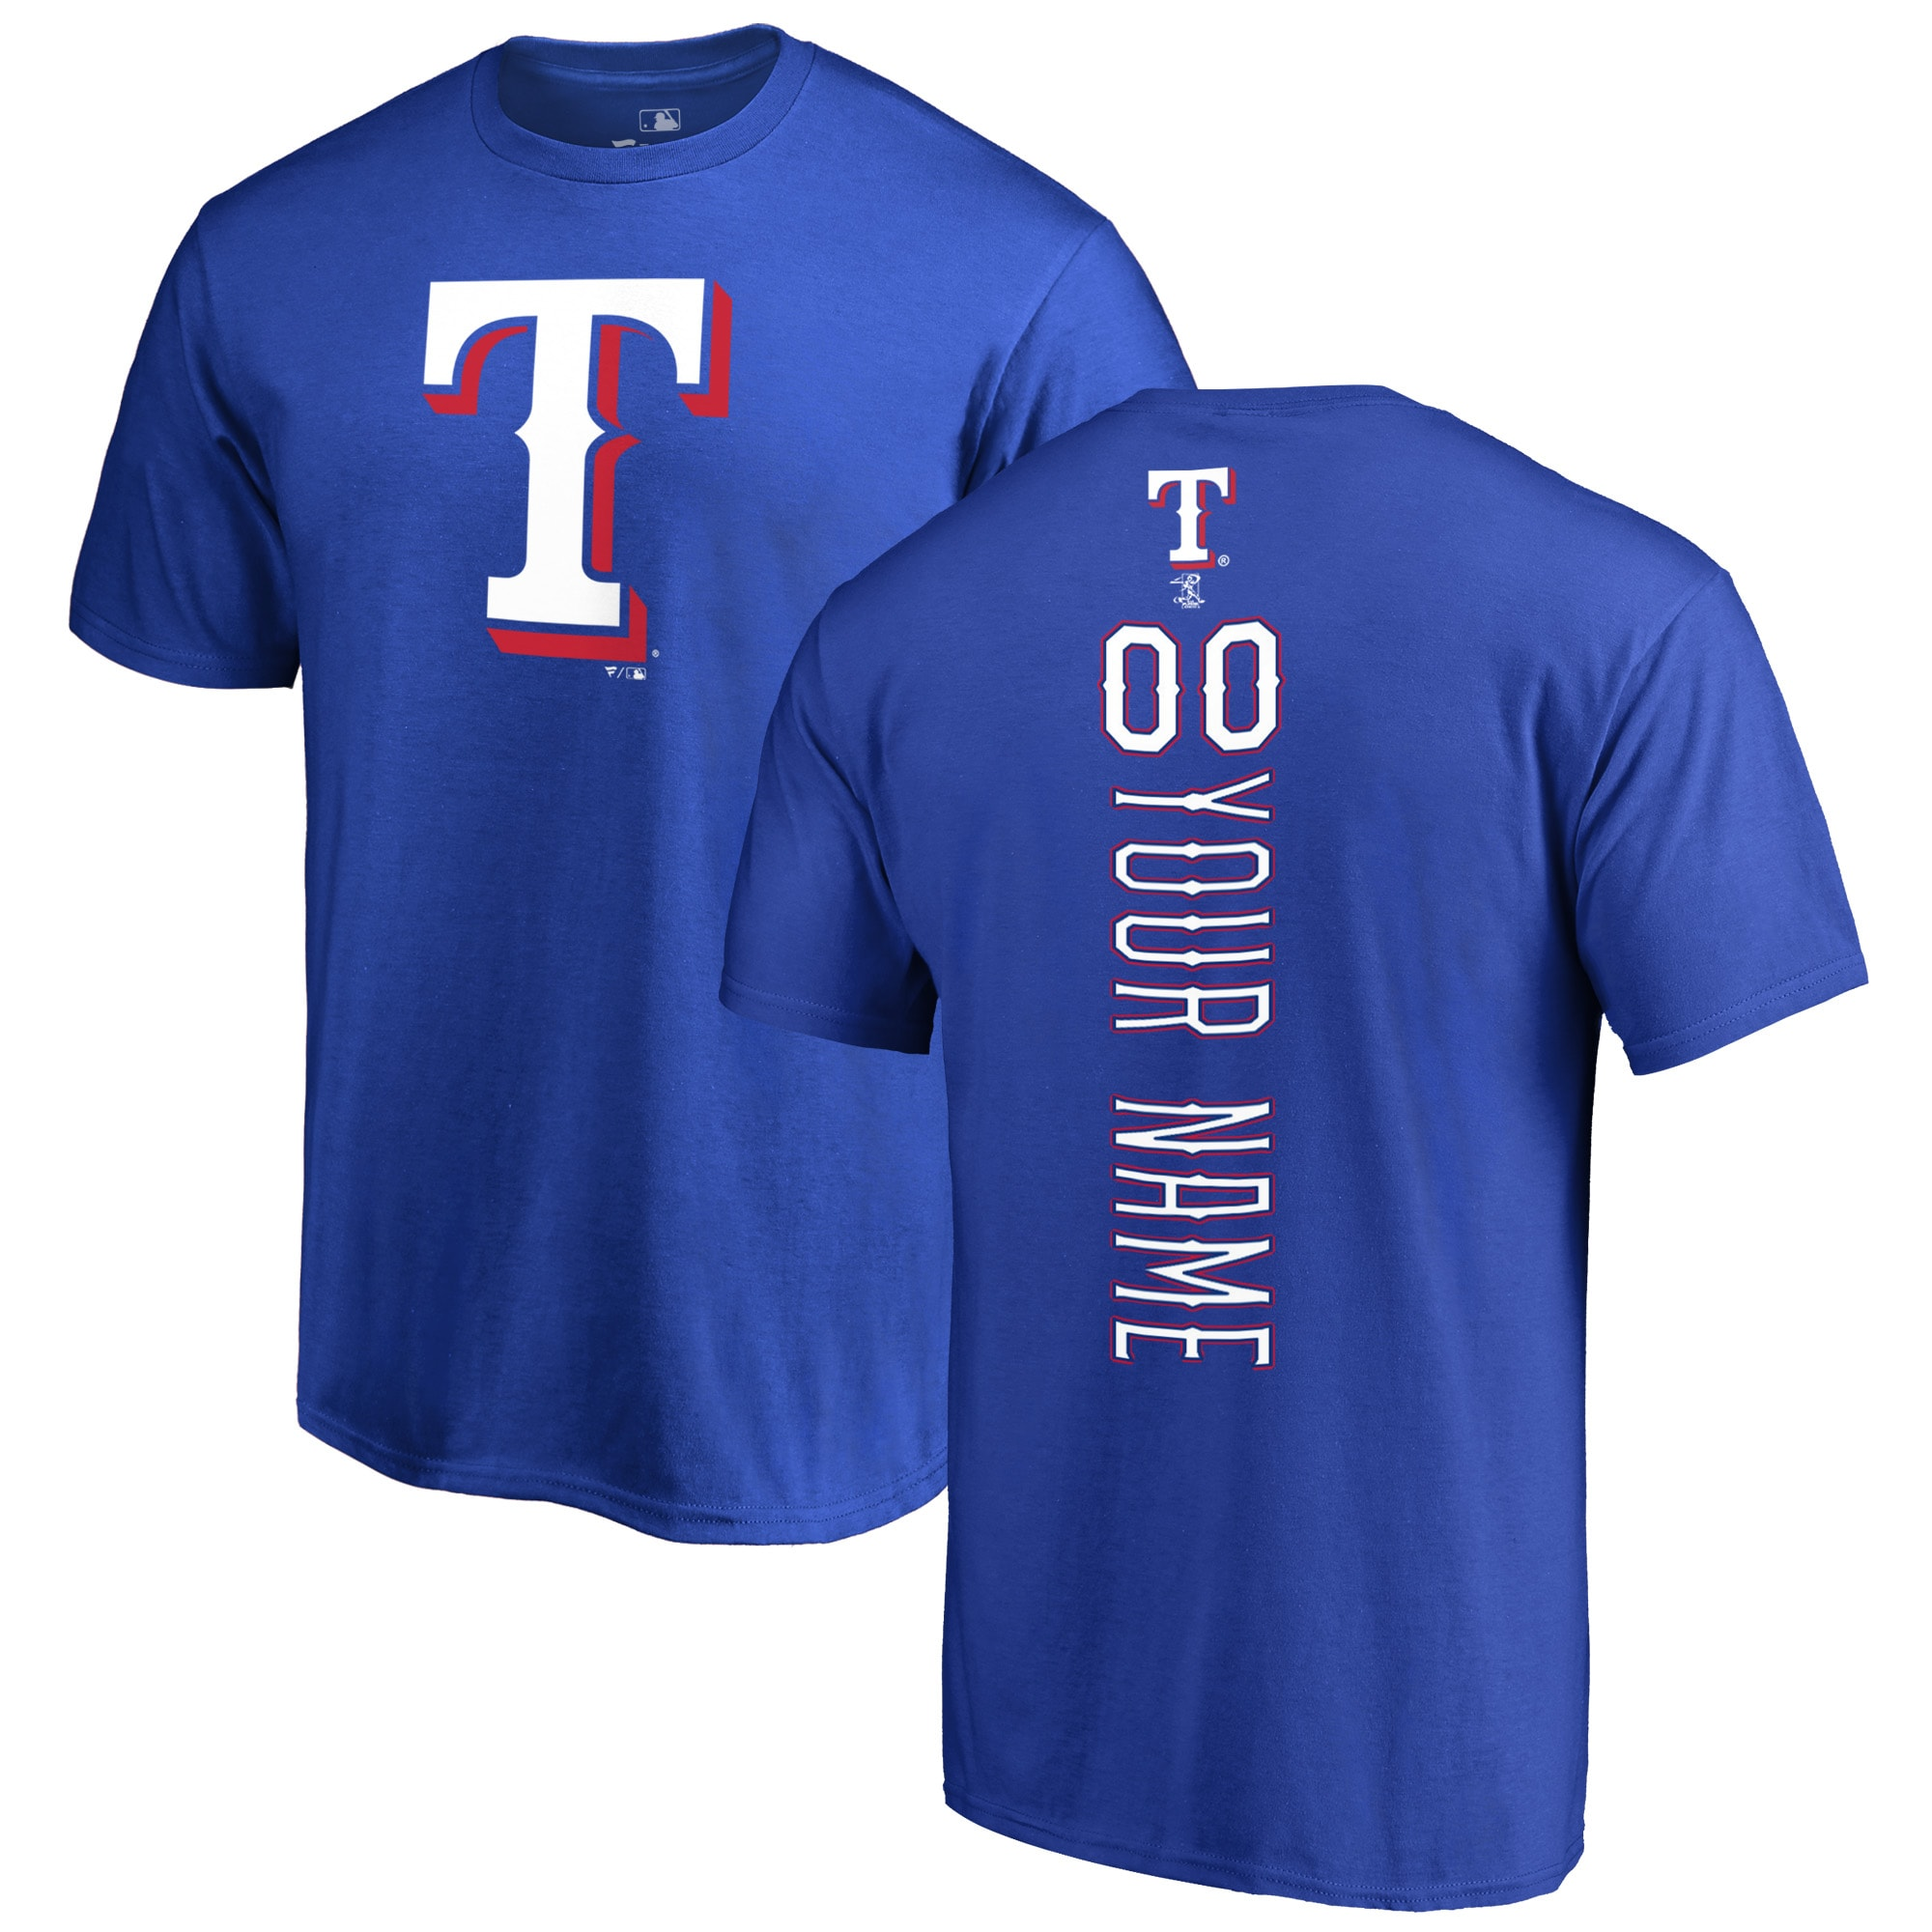 Texas Rangers Fanatics Branded Personalized Playmaker T-Shirt - Royal